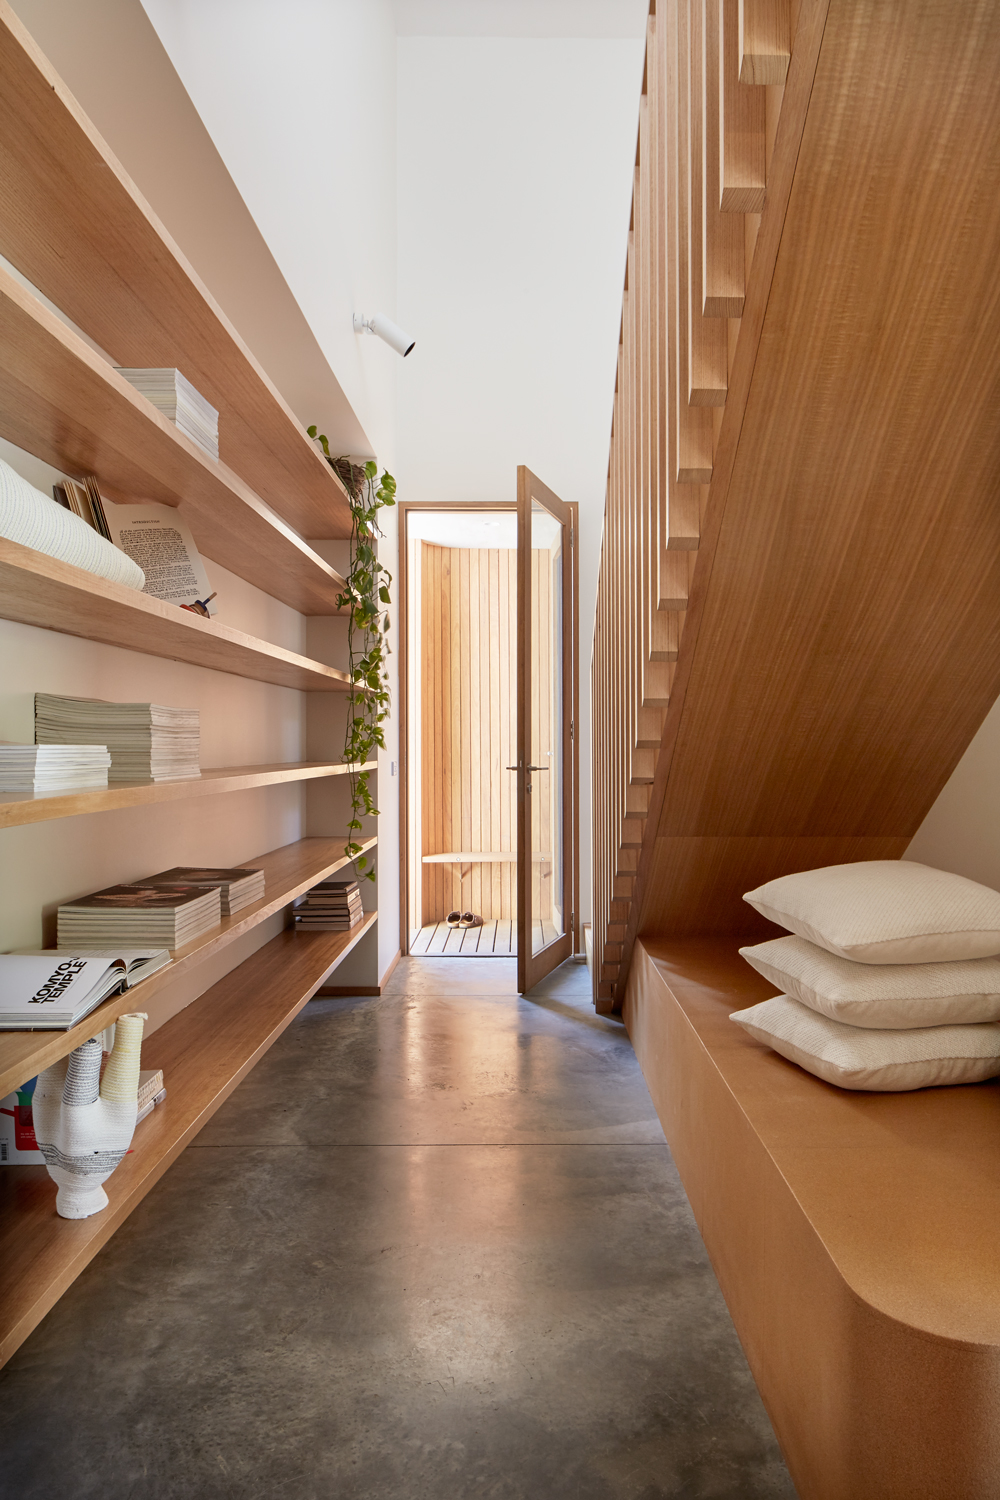 Emlyn Olaver Of Olaver Architecture Speaks To Their Process Of Approaching Domestic Life With A Sense Of Flexibility And Preparedness.